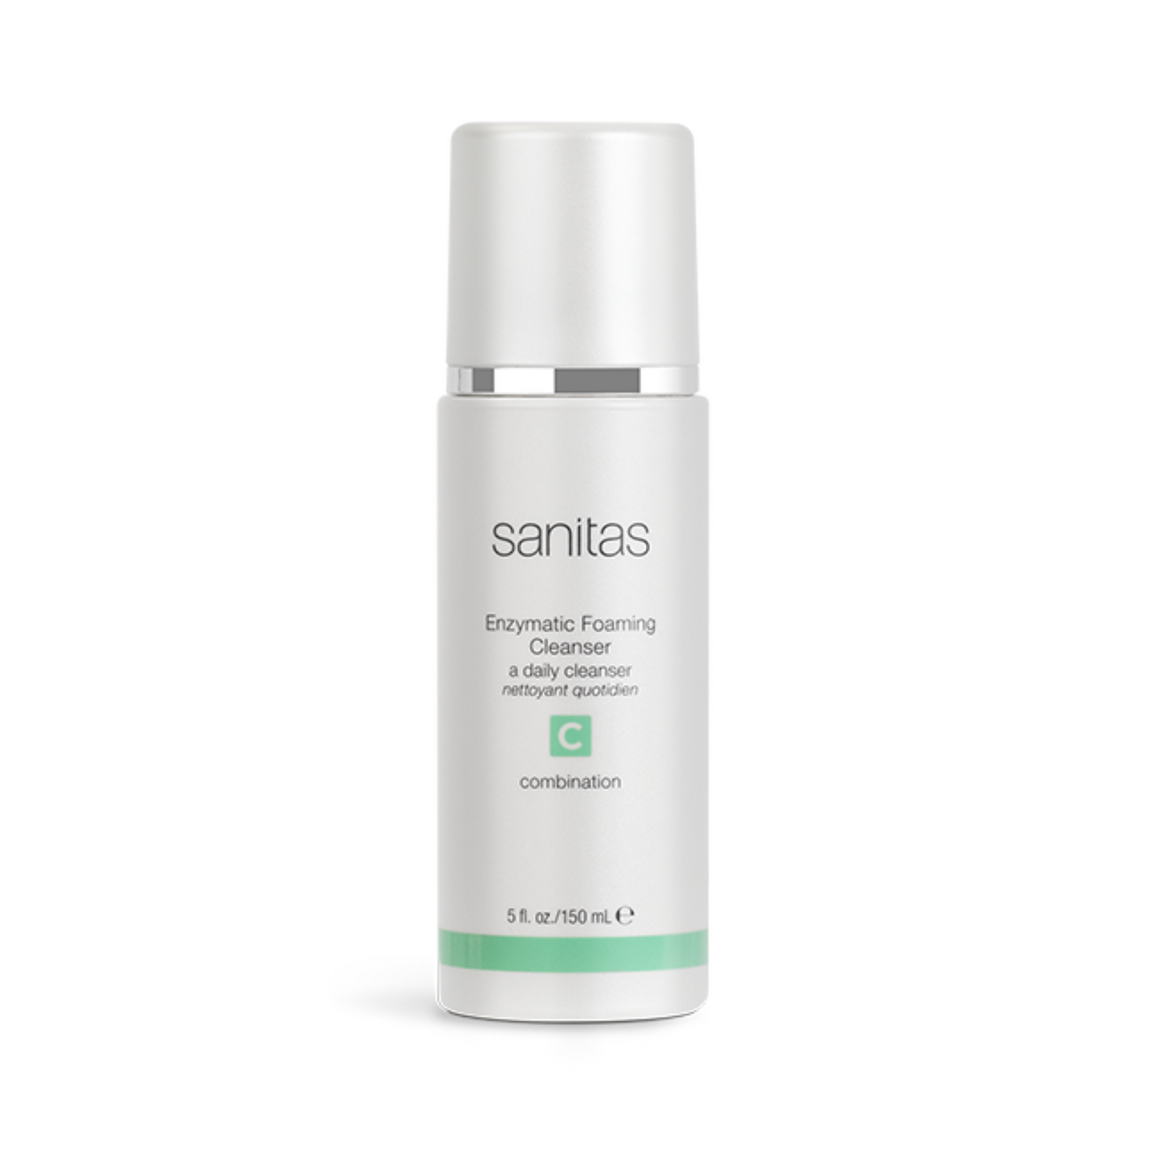 Sanitas Enzymatic Foaming Cleanser